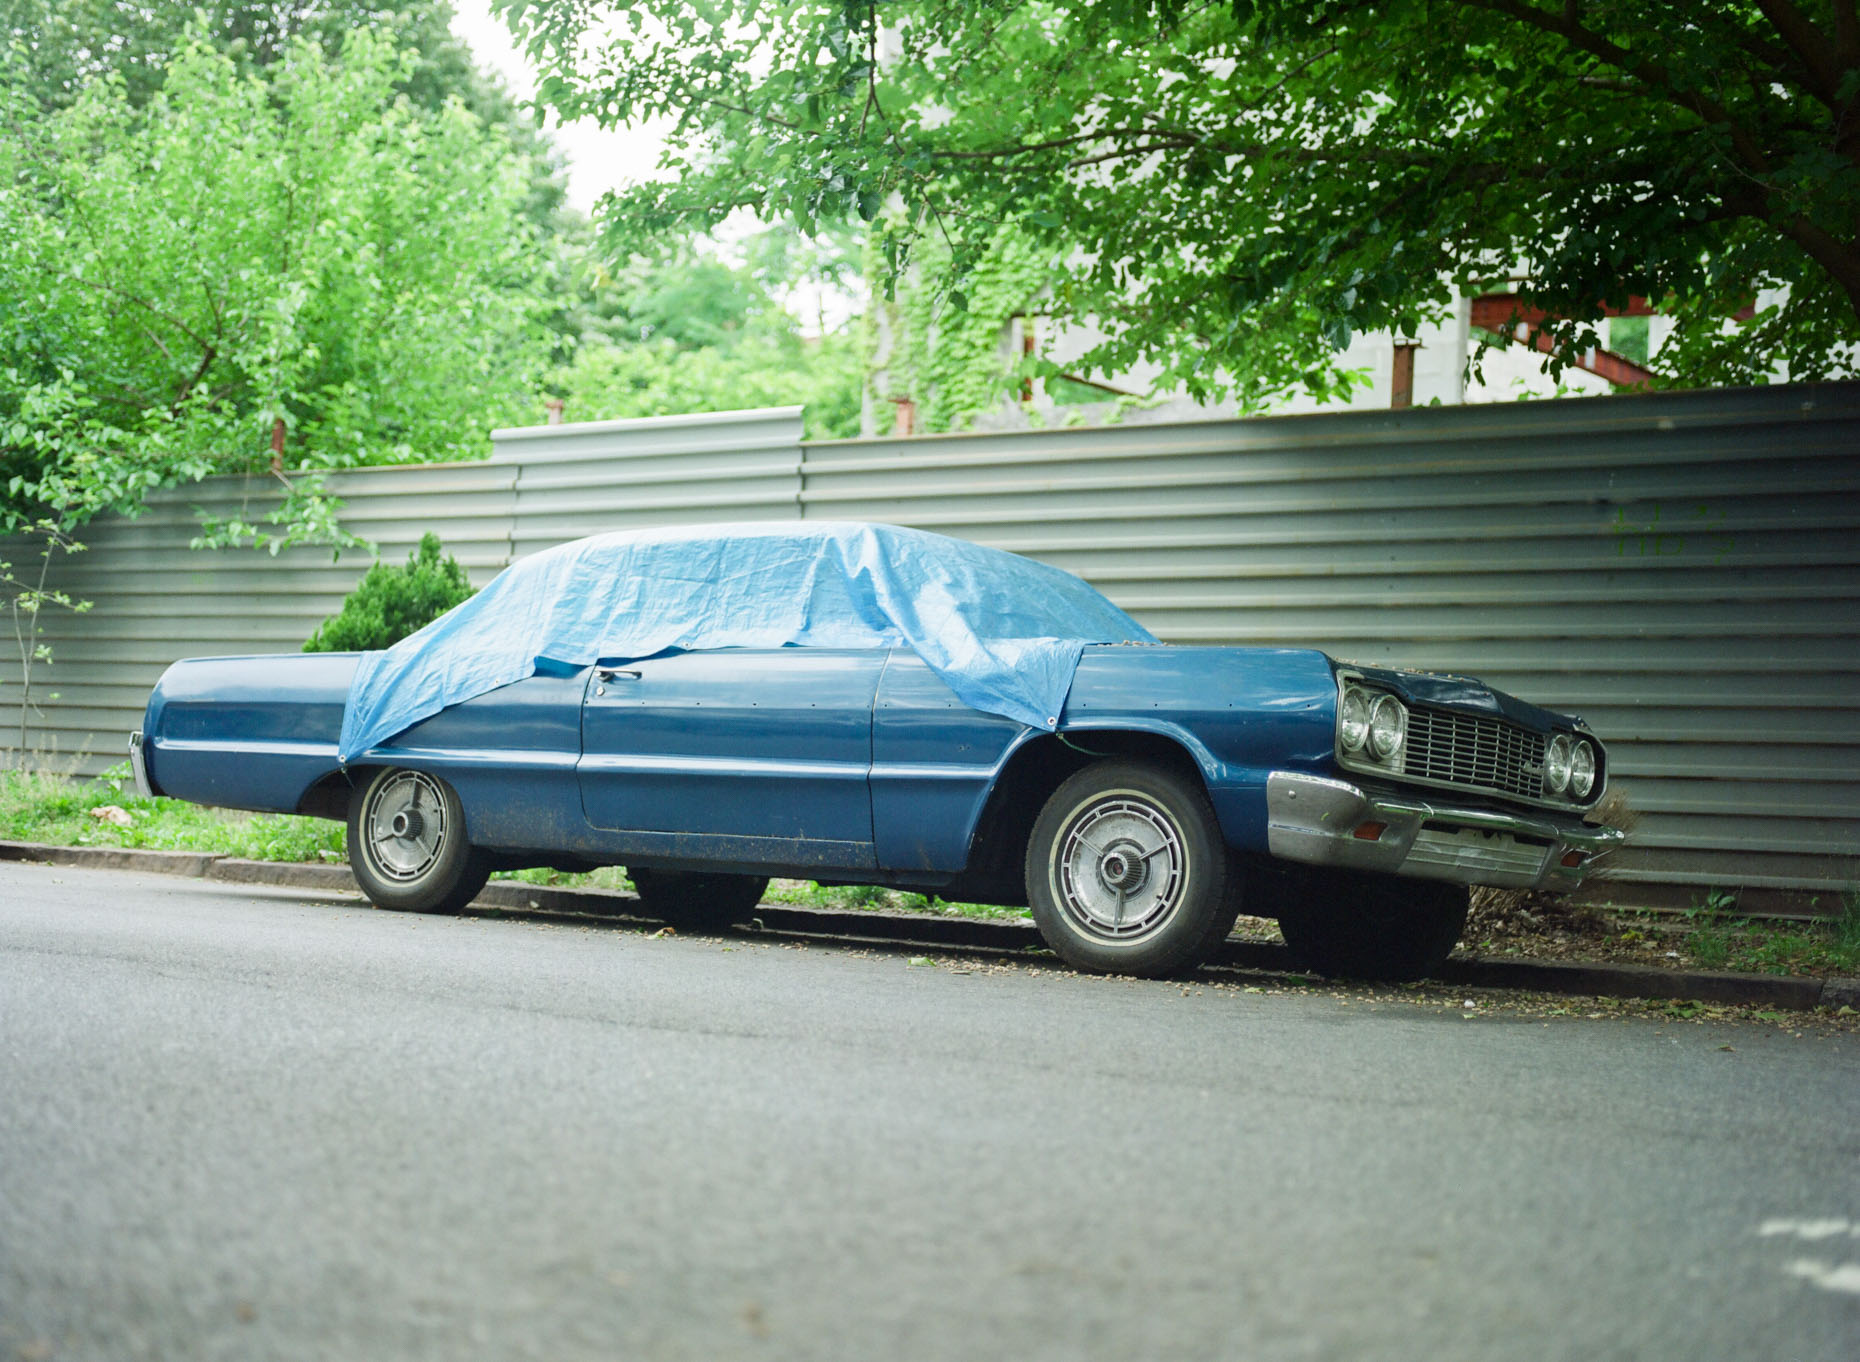 A blue classic vintage car sits under tarp on a street in Ditmas Park in Brooklyn, NY.